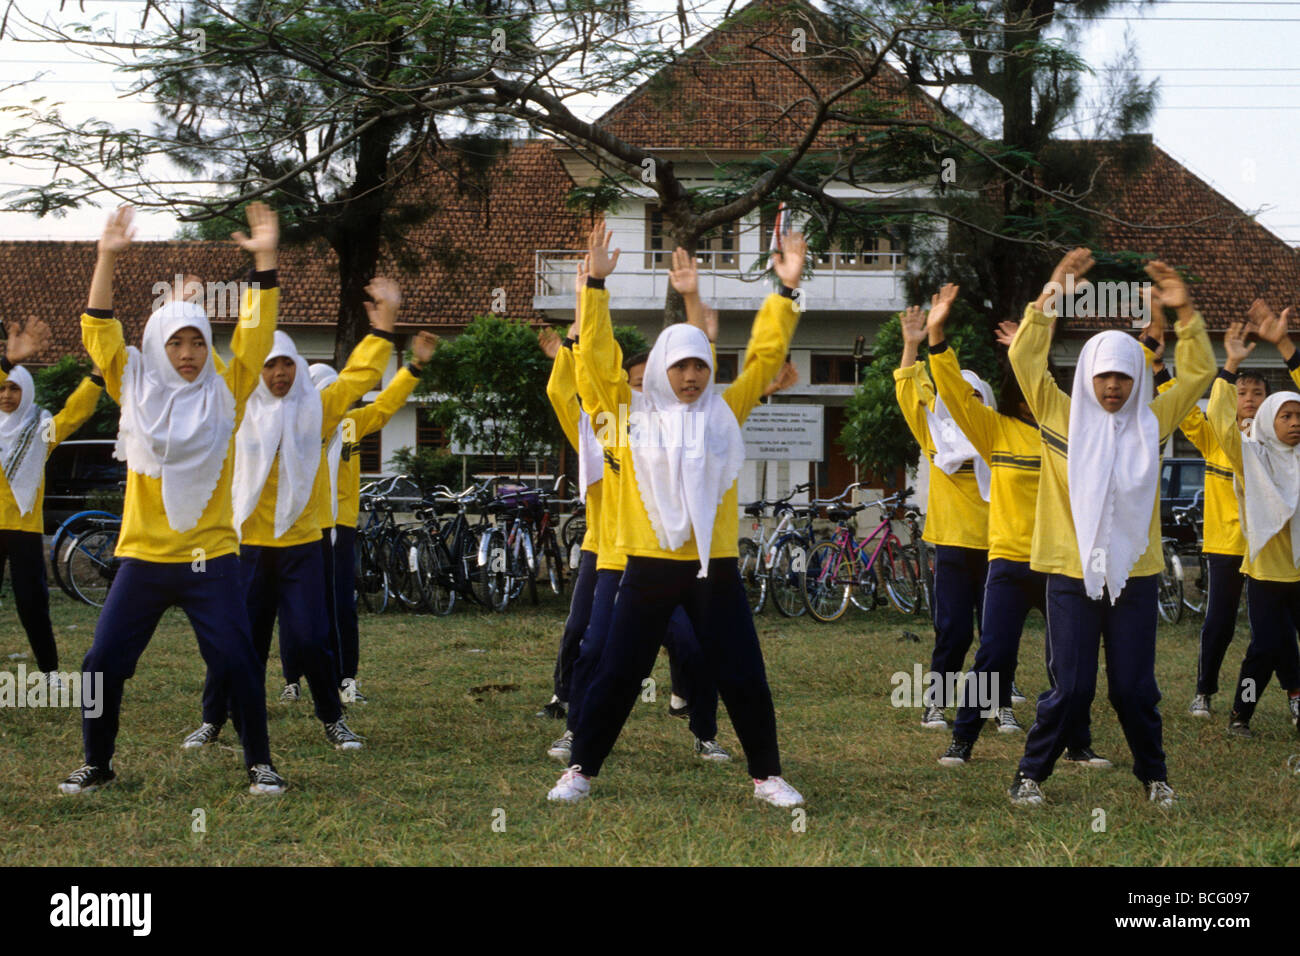 java-indonesia-girls-during-the-physical-education-lesson-jogjiakarta-BCG097.jpg